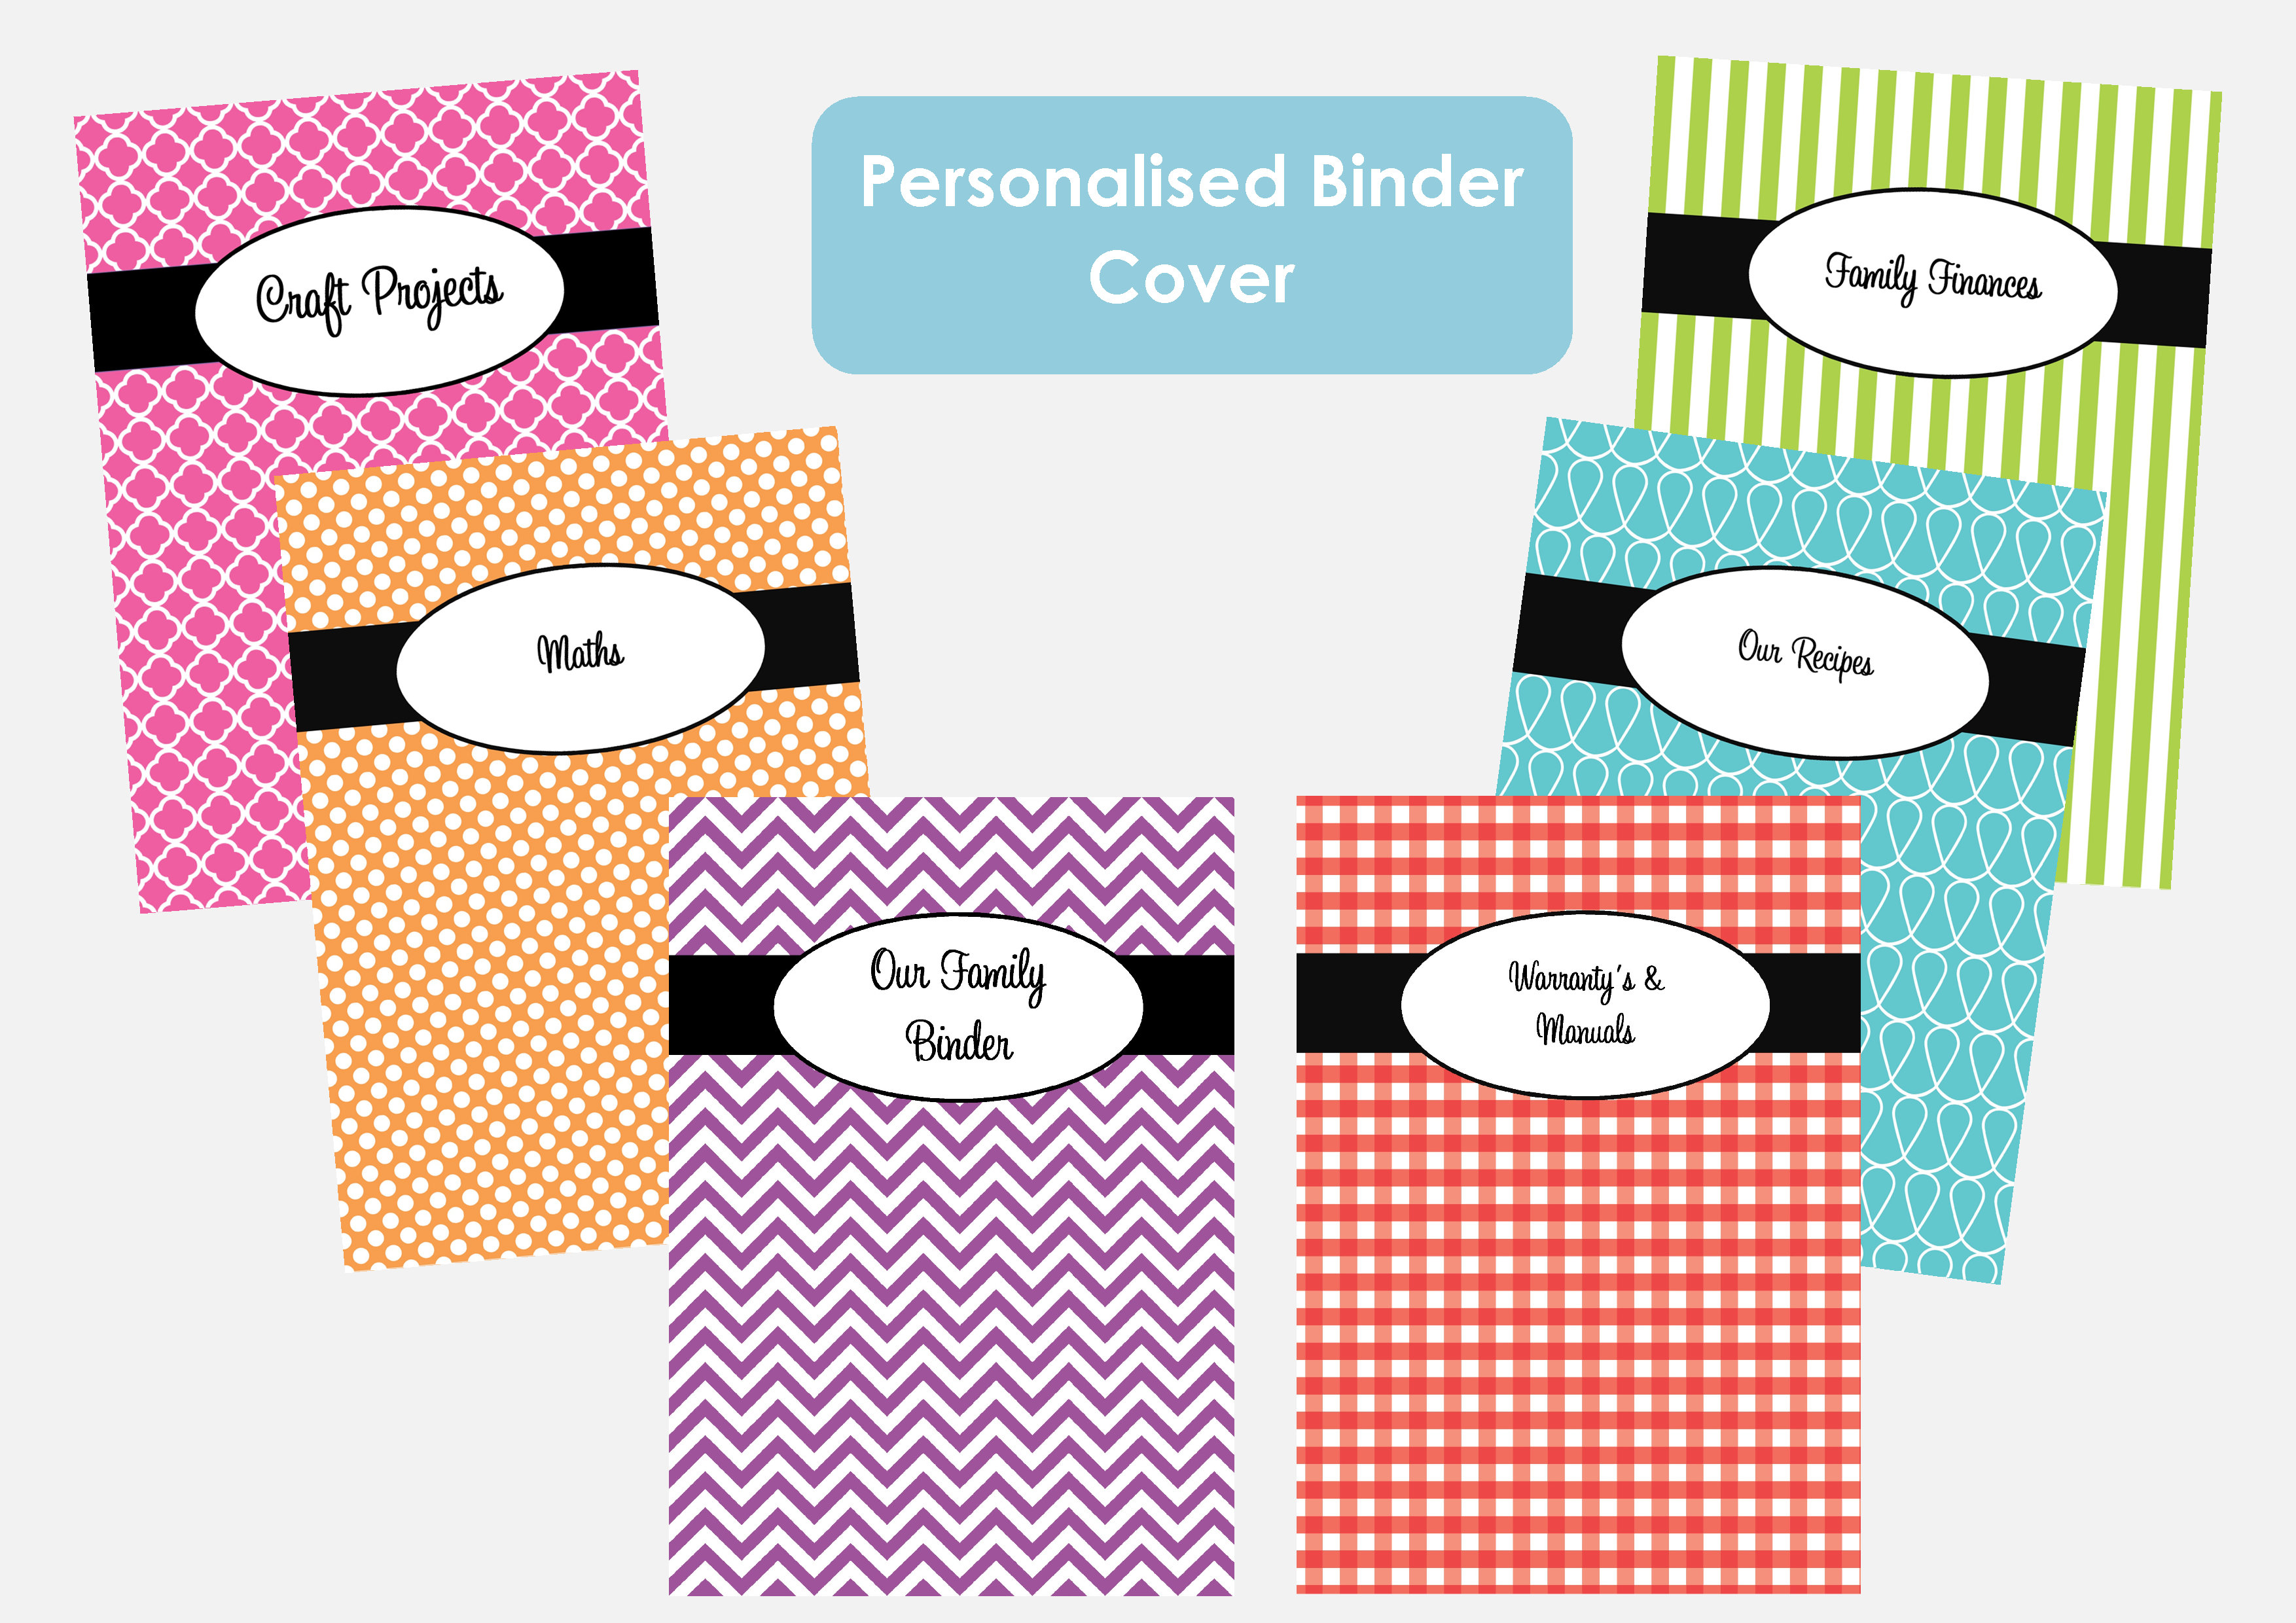 Printable recipe binder cover templates lzk gallery